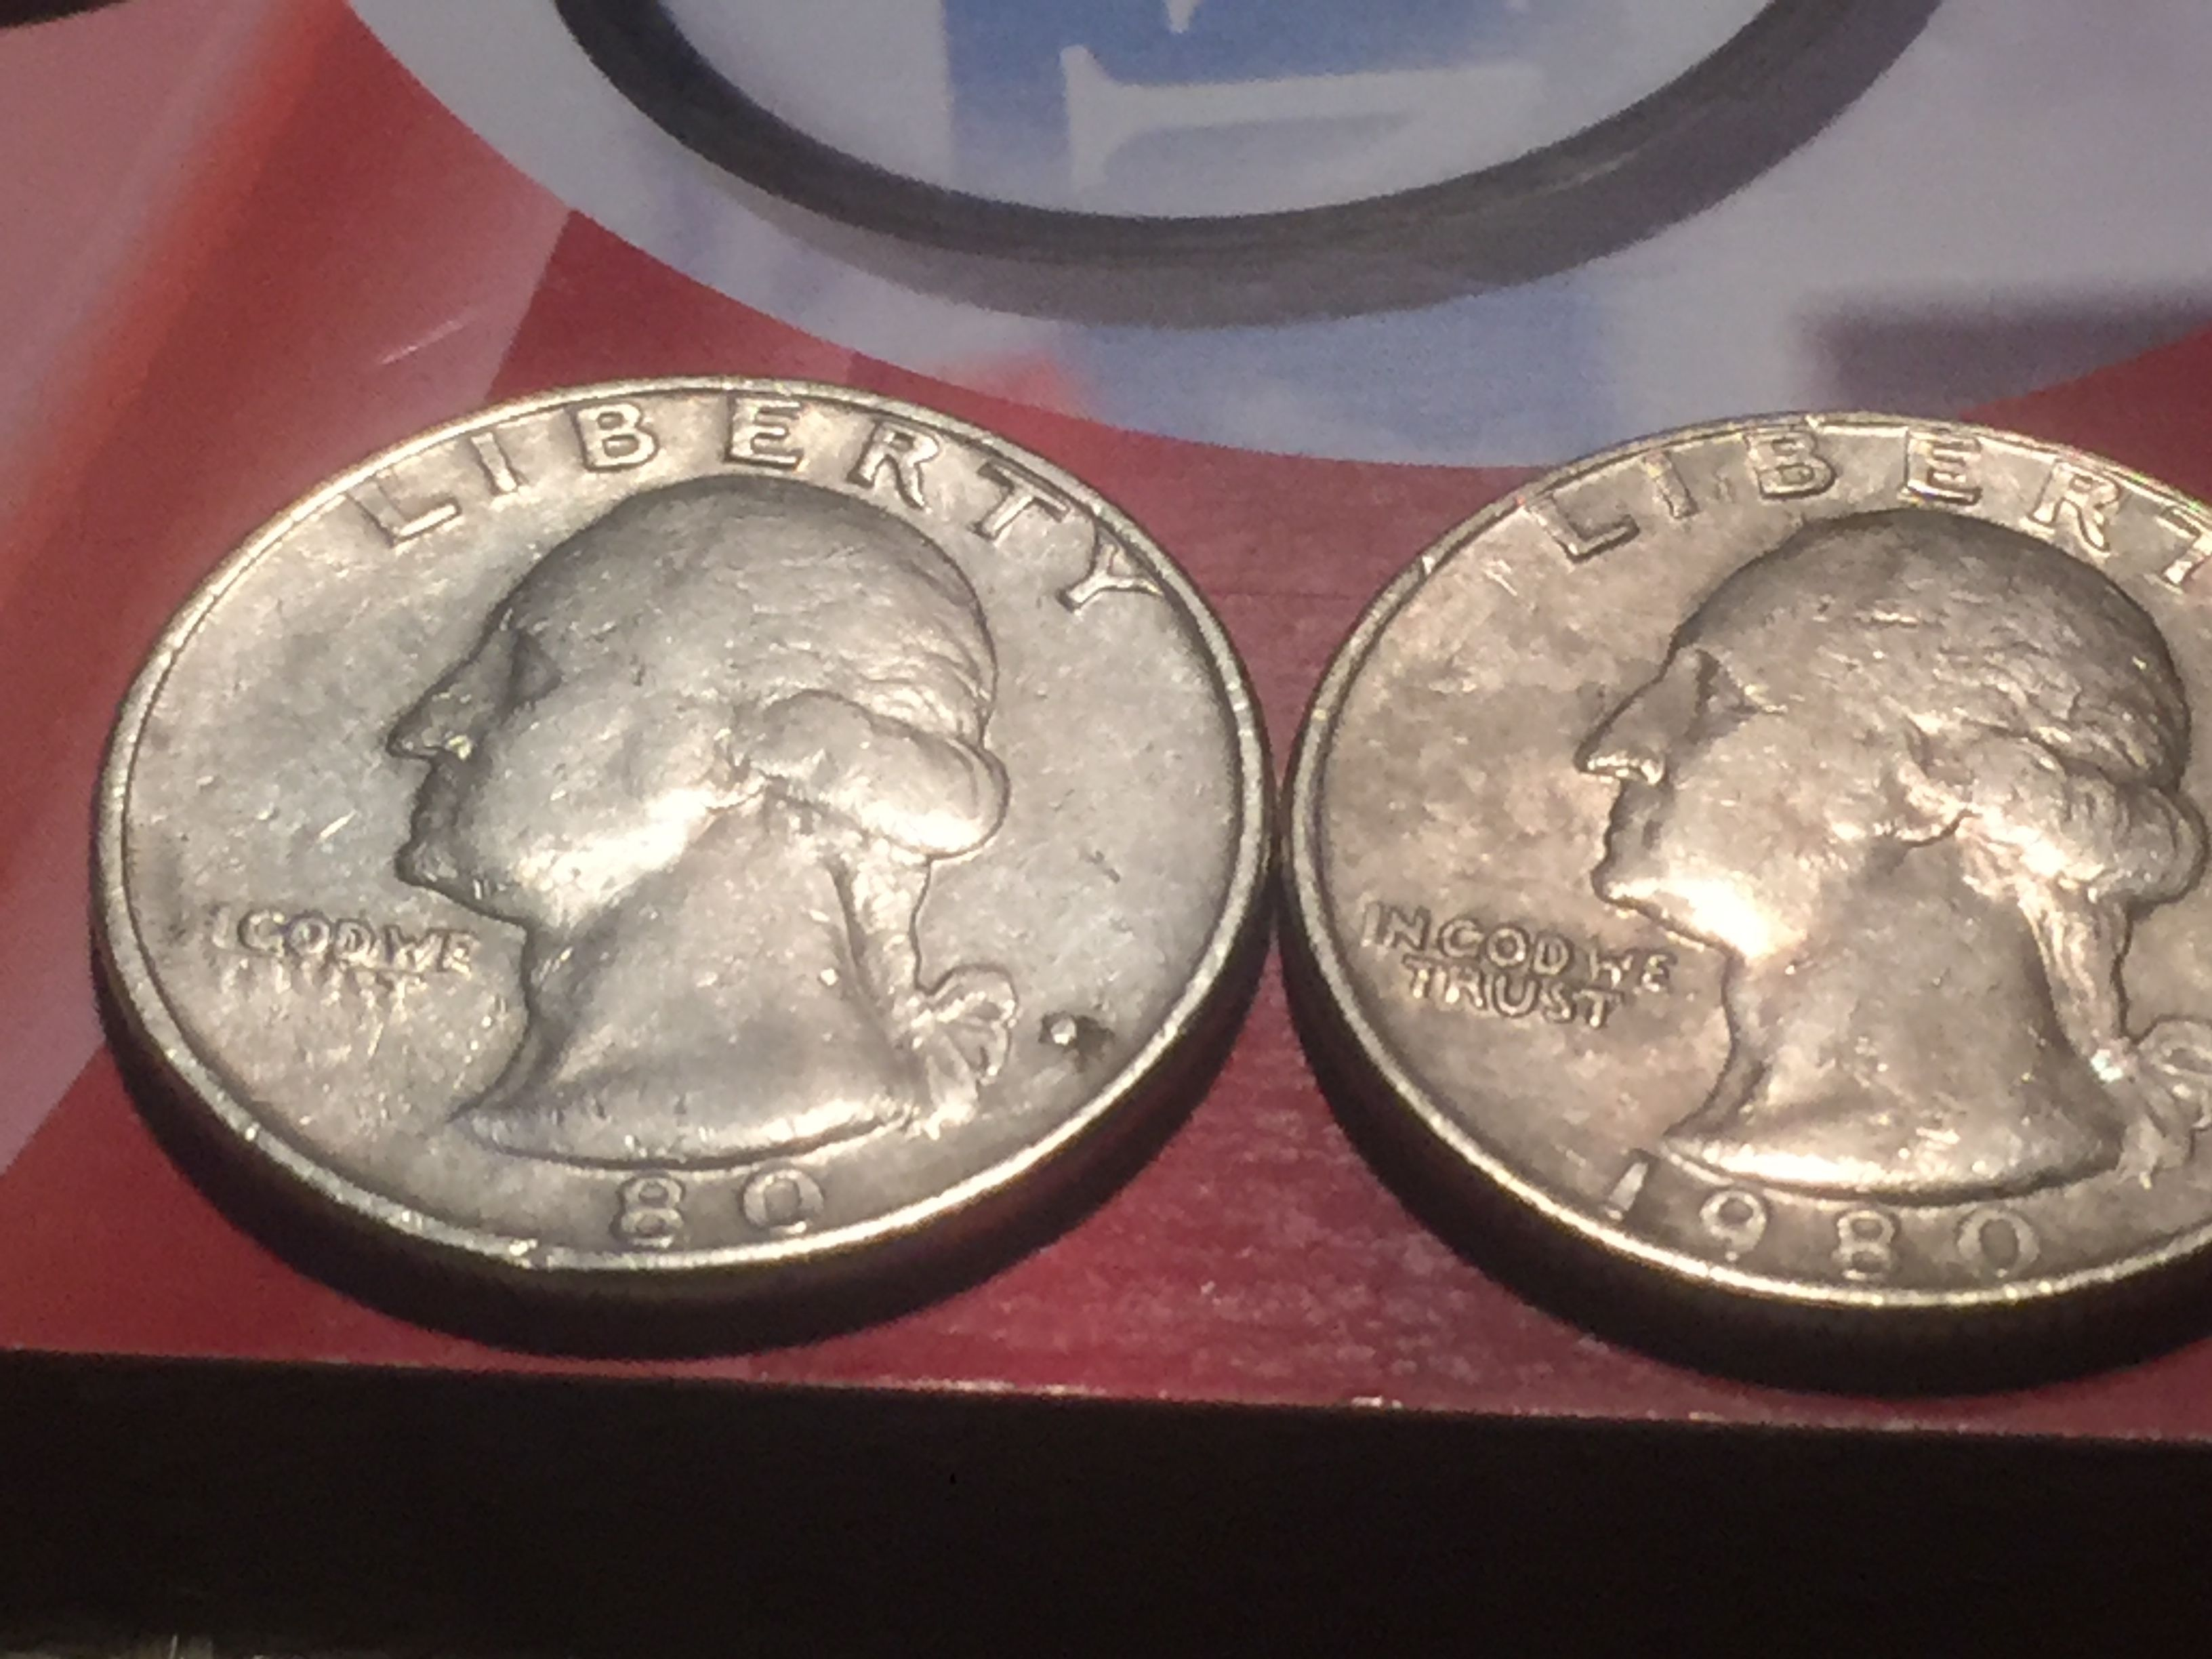 What's a 1980 Quarter worth if it's missing part of the year